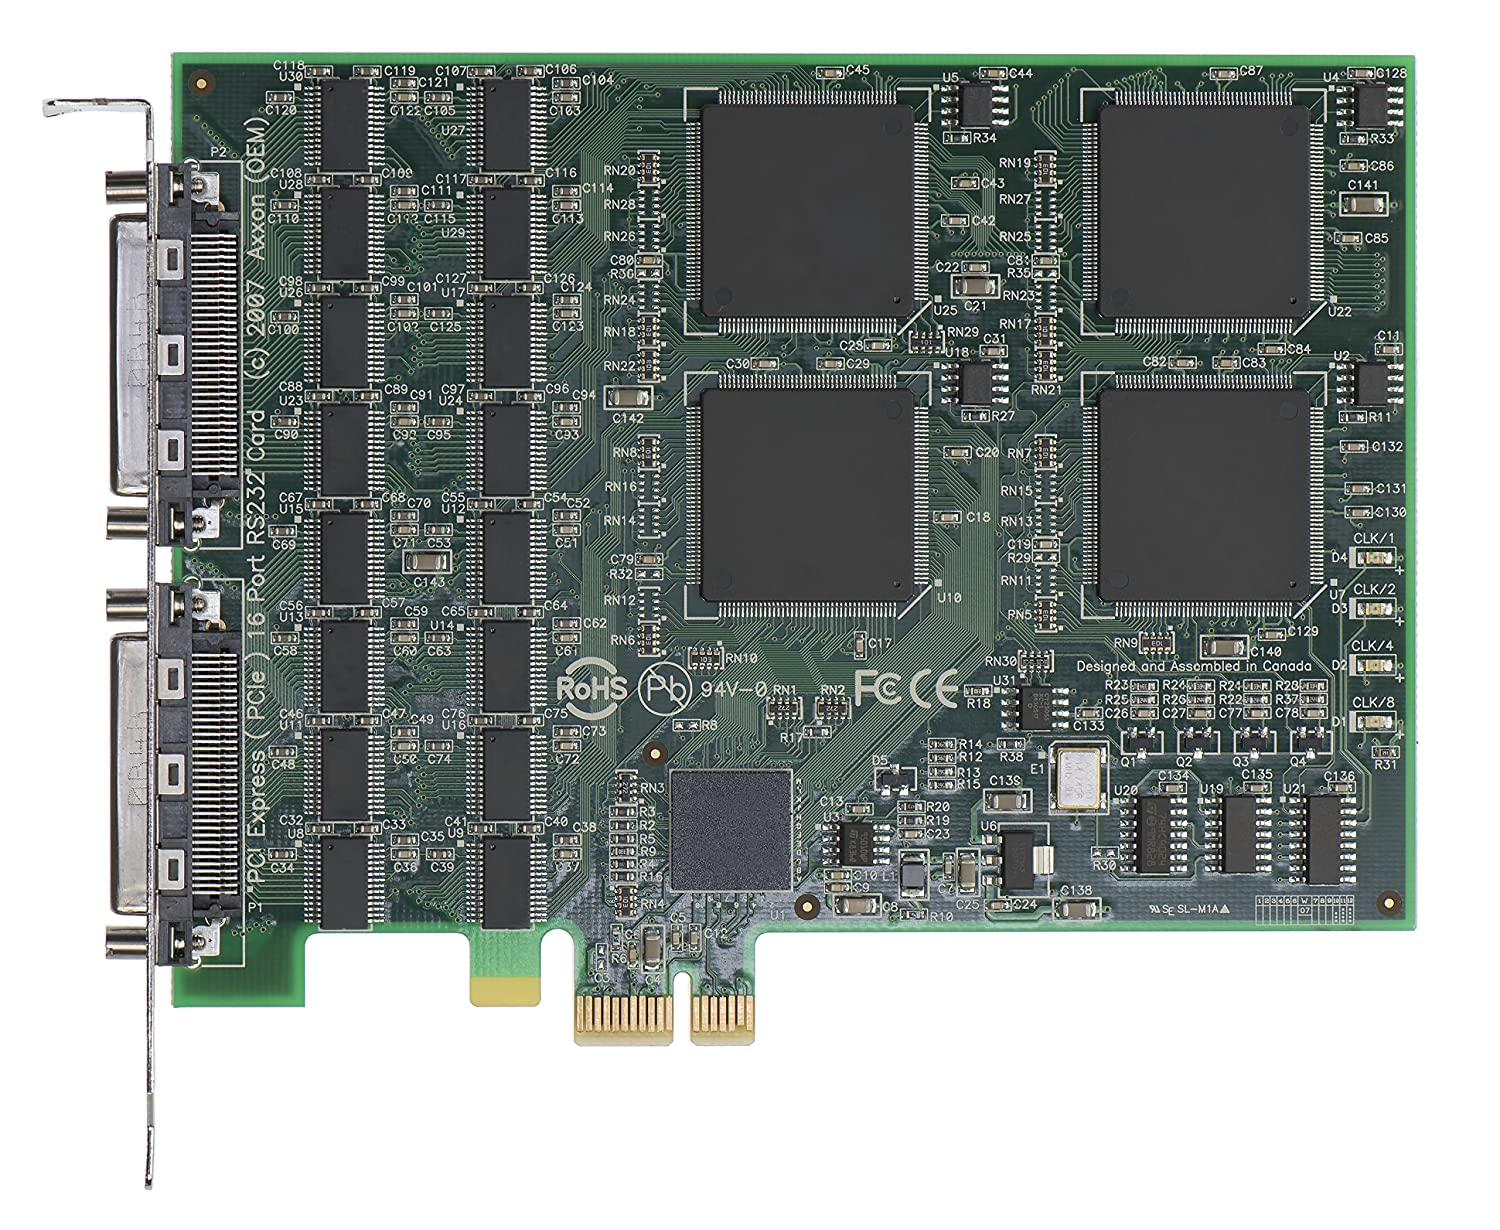 Amazon.com: axxon lf729kb-16s PCIe 16 puerto RS232 I/O ...